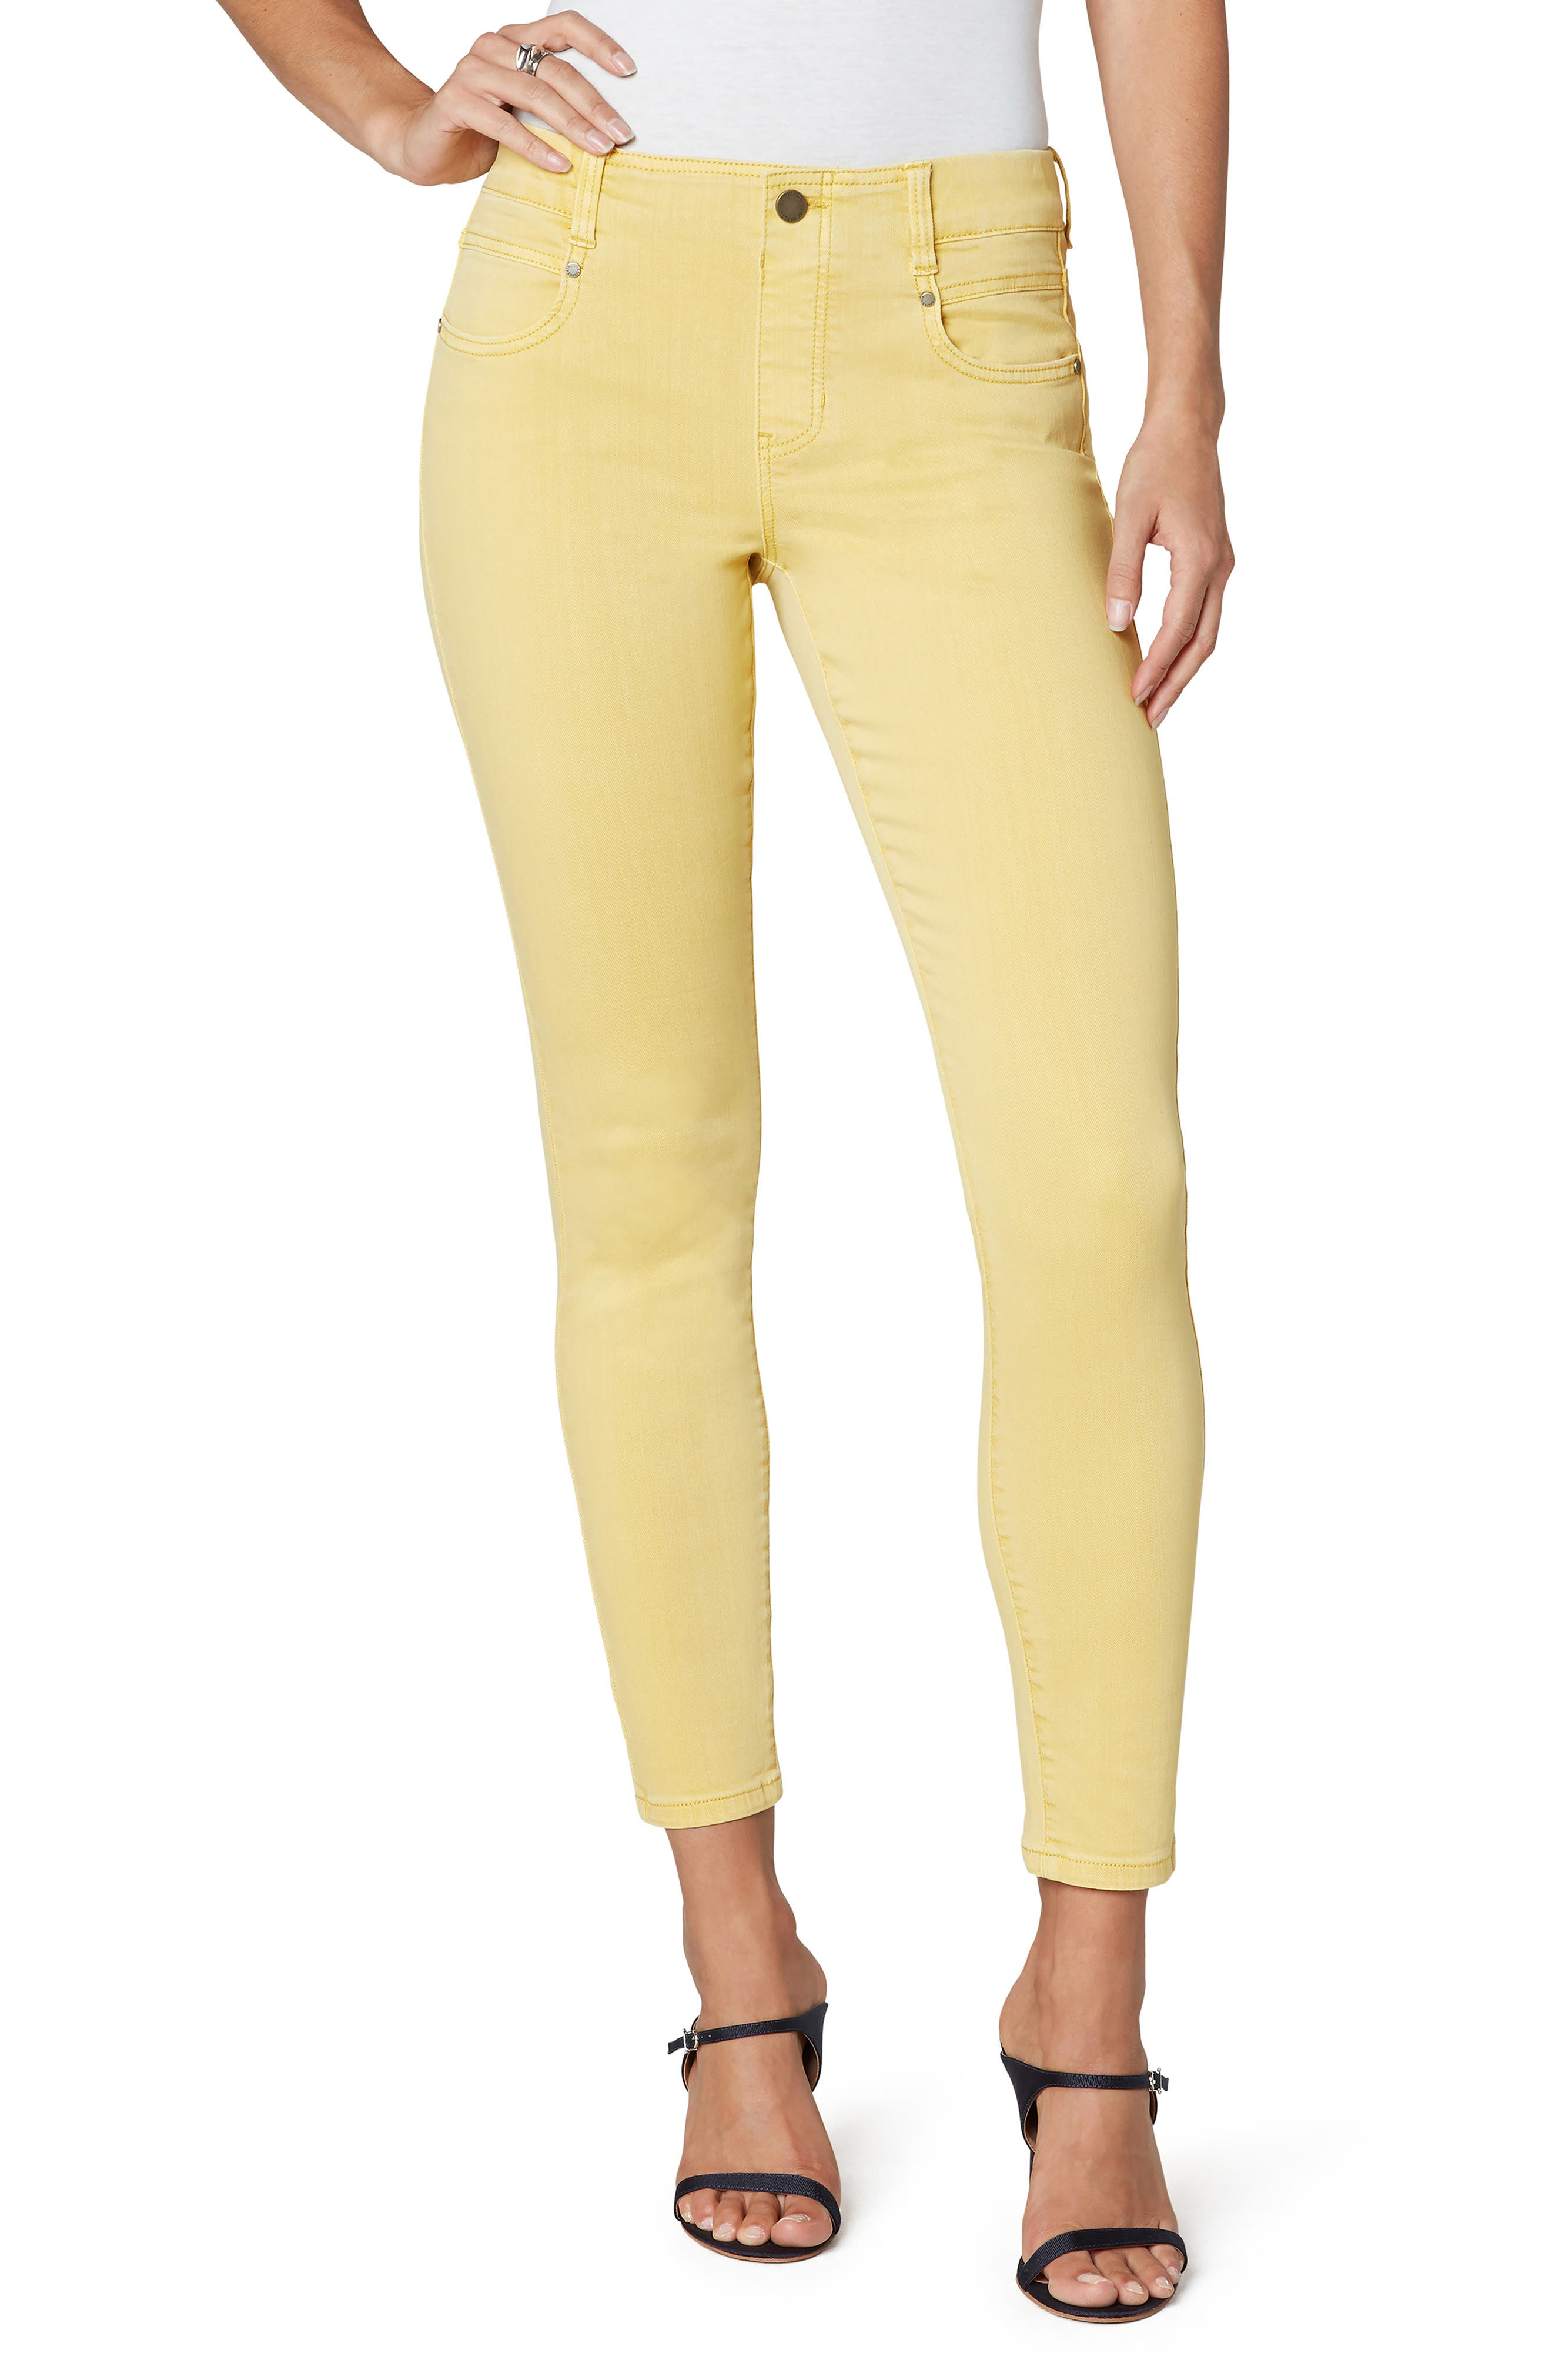 Gia Glider Ankle Skinny Jeans